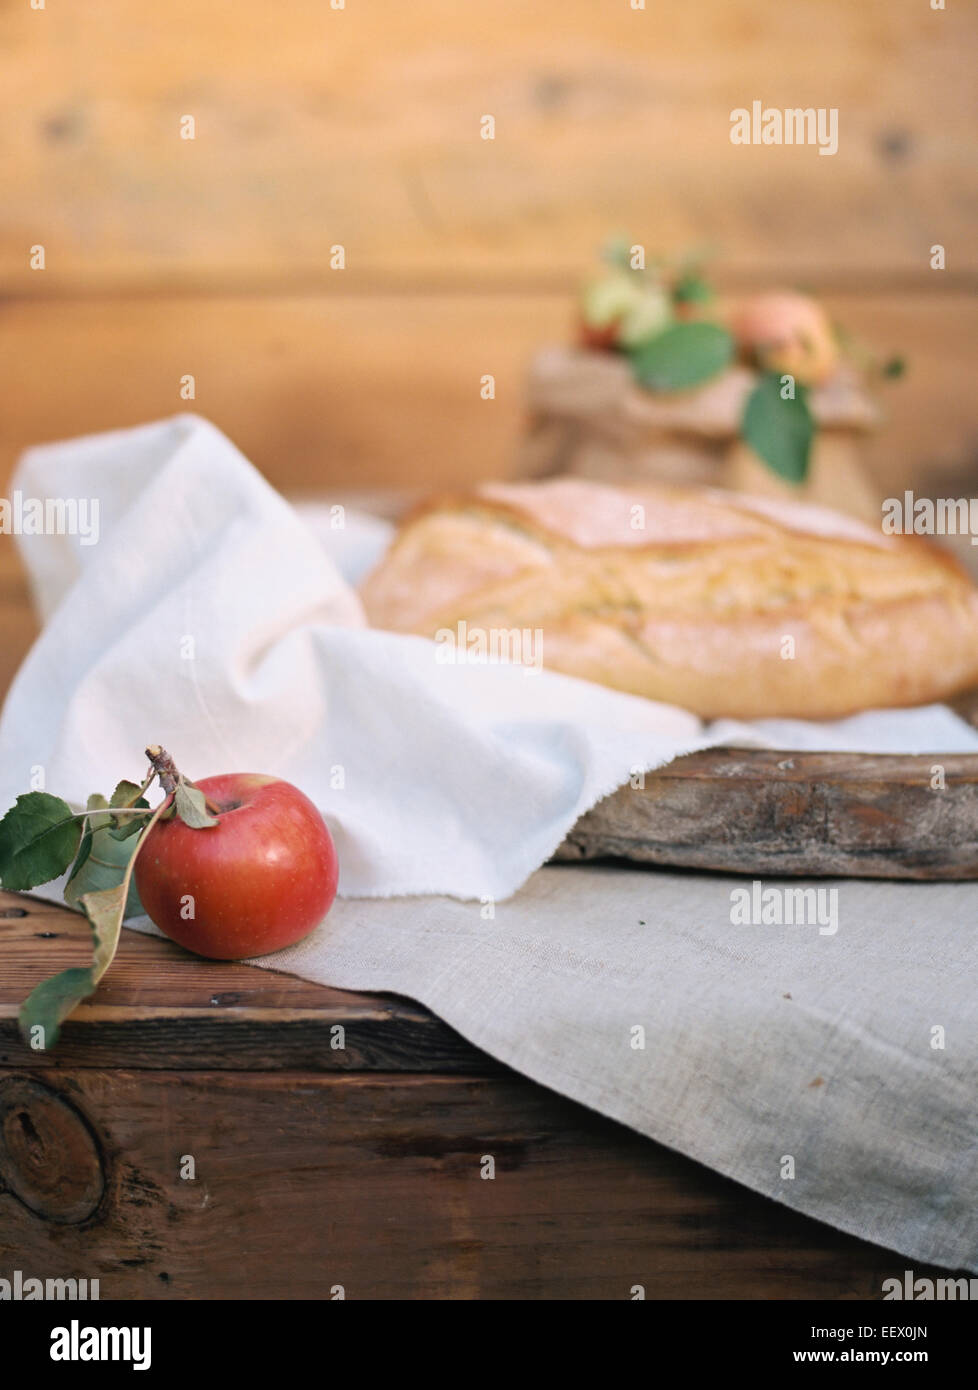 Apple orchard. A table with food. - Stock Image